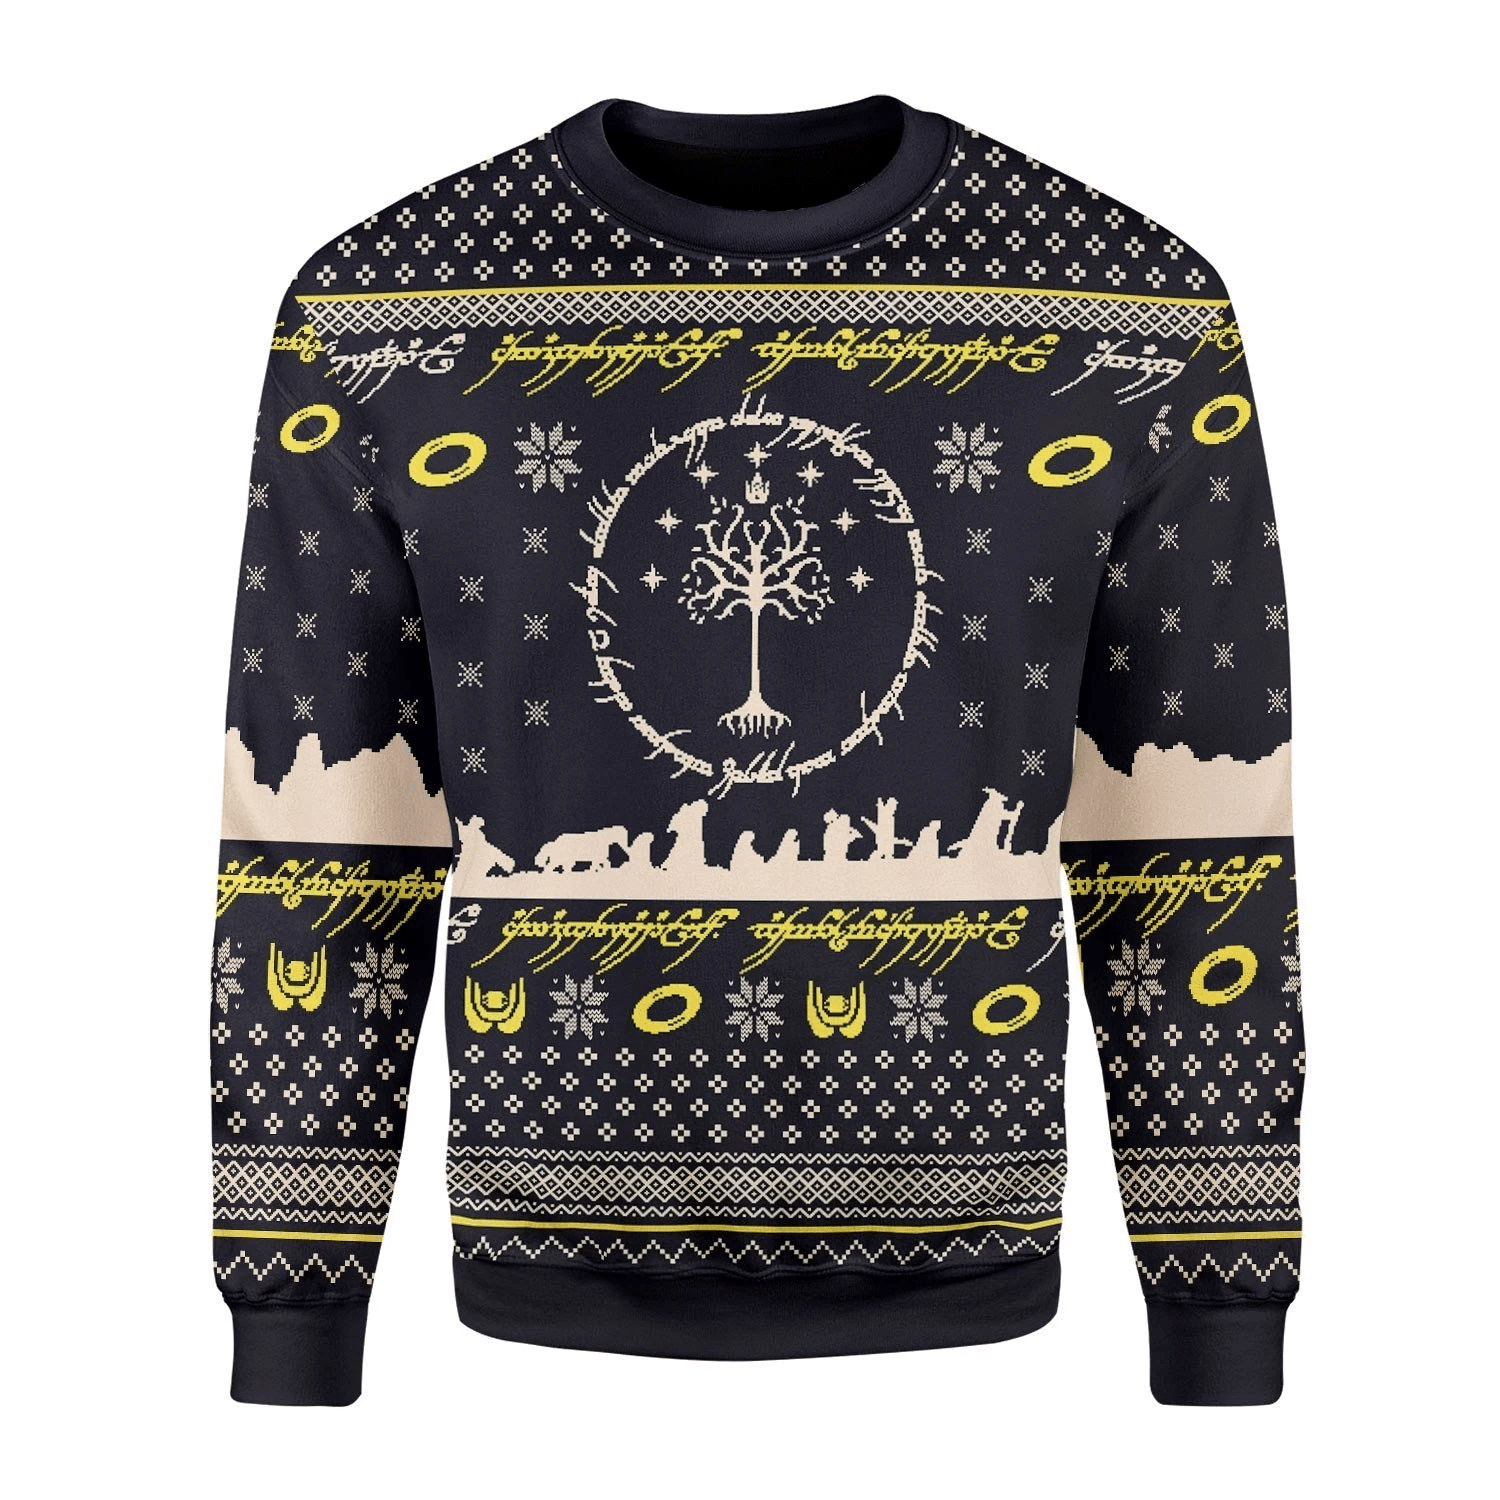 Merry Christmas Gearhomies Unisex Christmas Sweater Lord Of The Rings Ugly Christmas